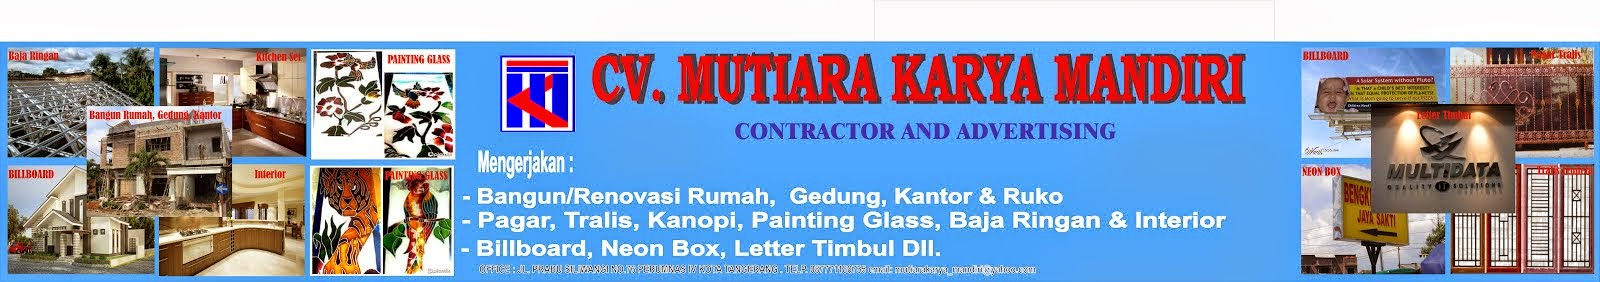 GENERAL CONTRACTOR AND ADVERTISING